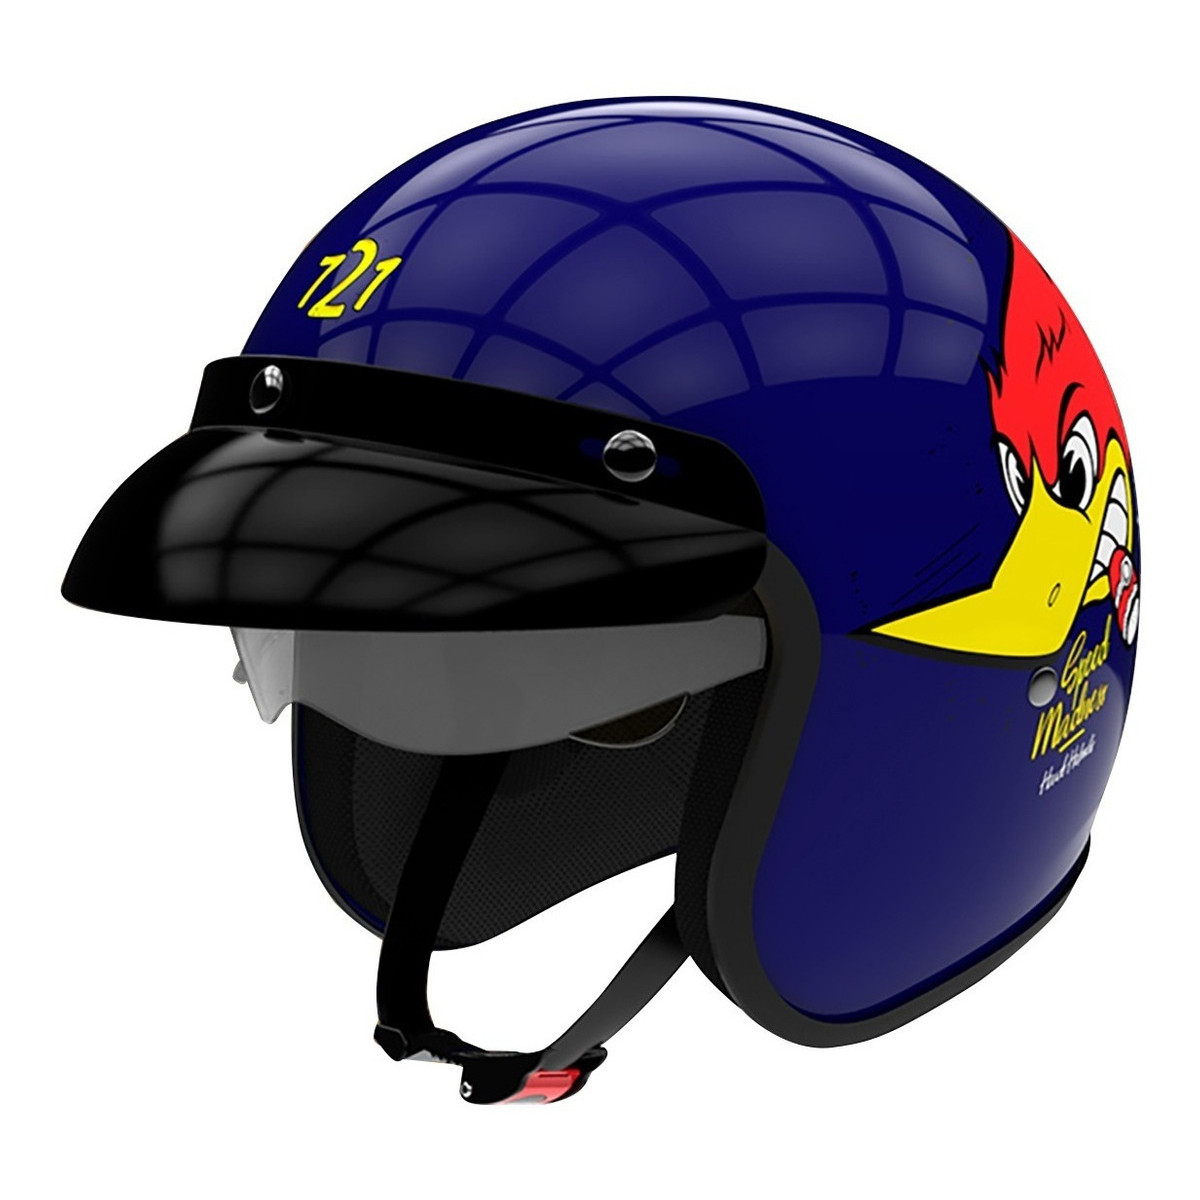 Casco Abierto Hawk 721 Speed Madness Azul